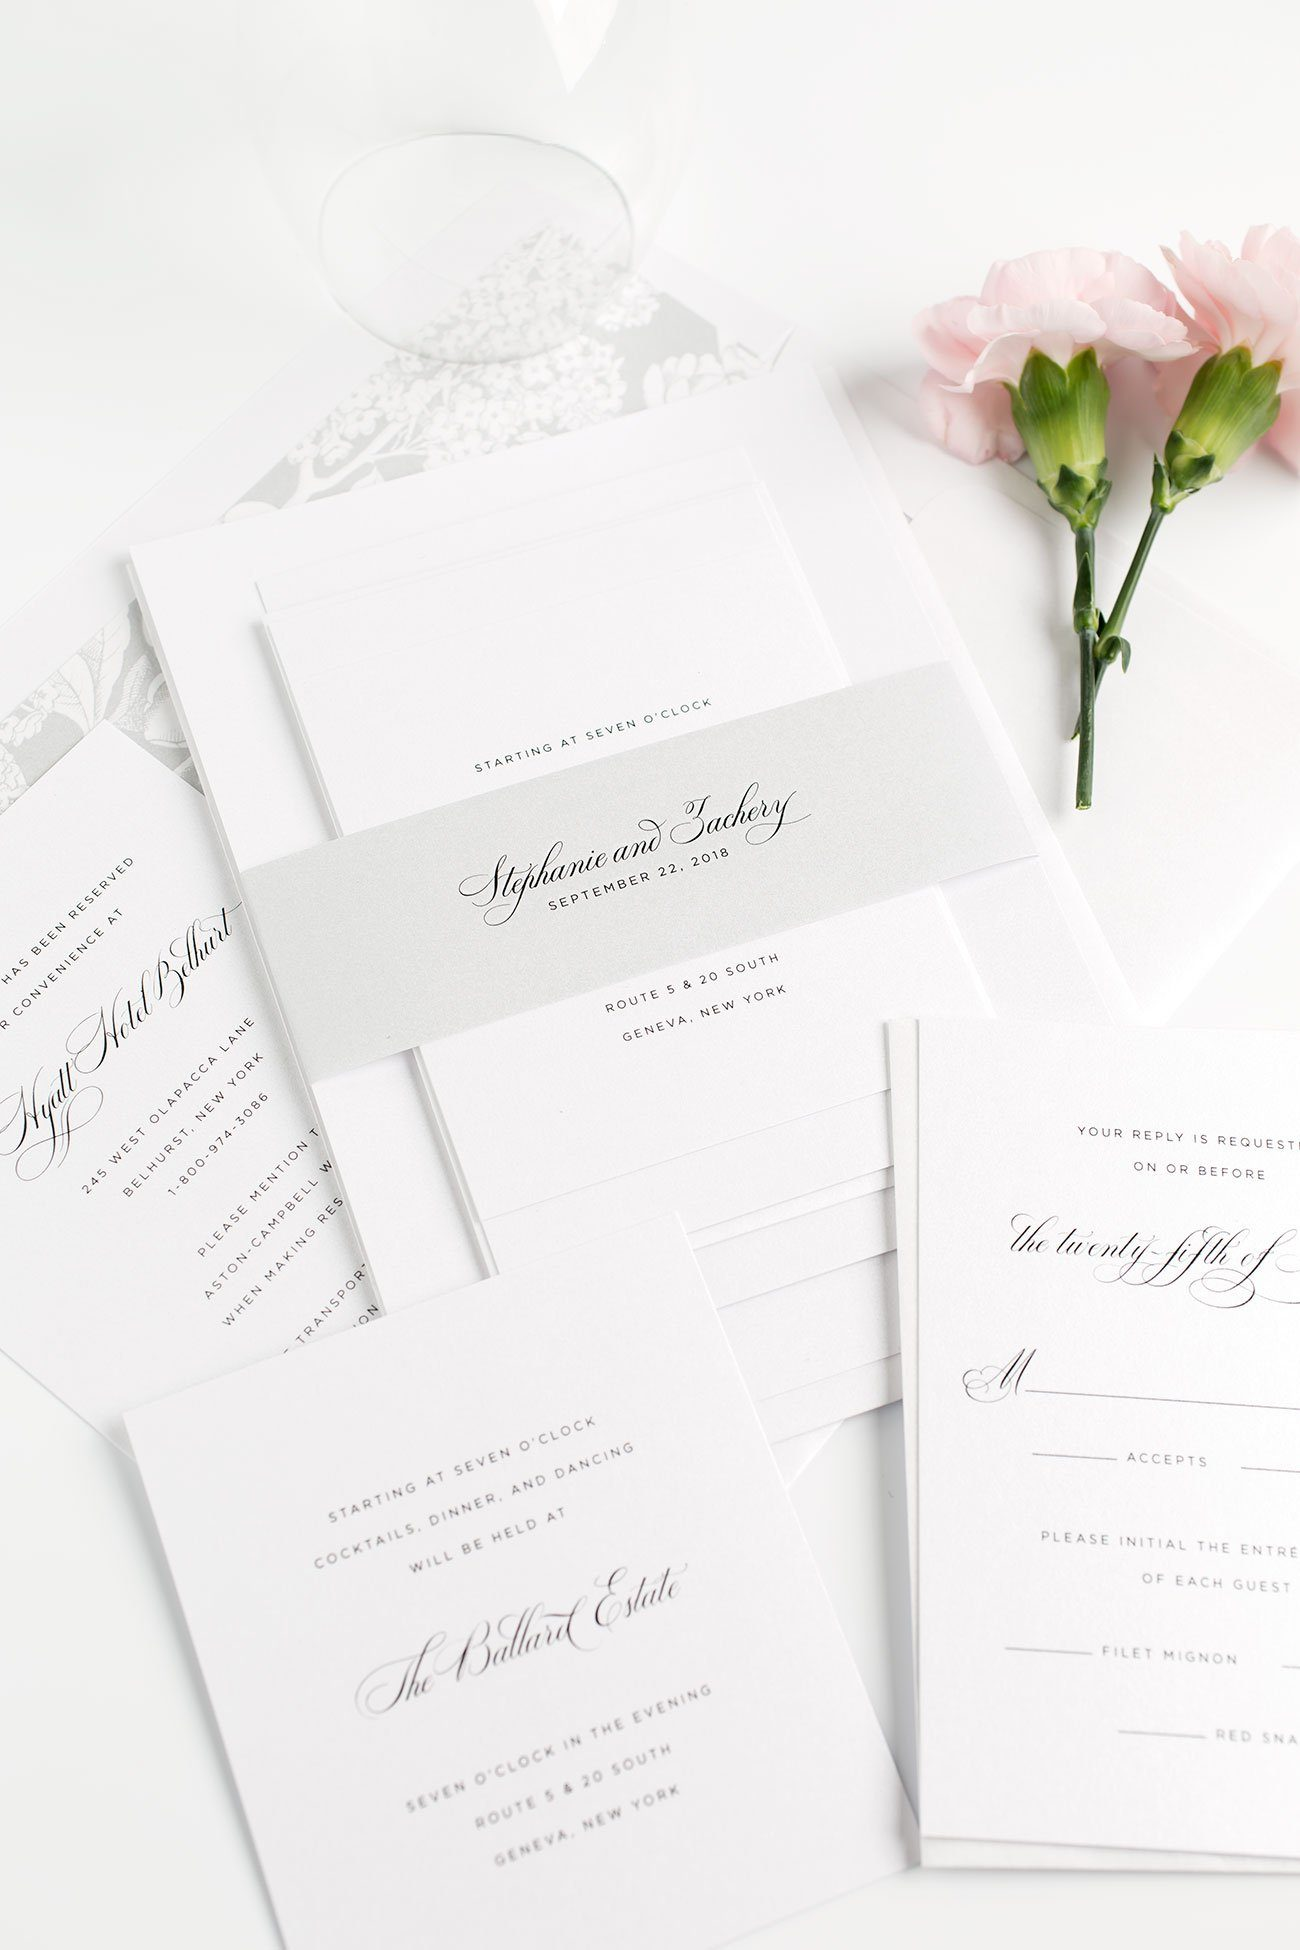 Classic Wedding Invitations with Script in Gray